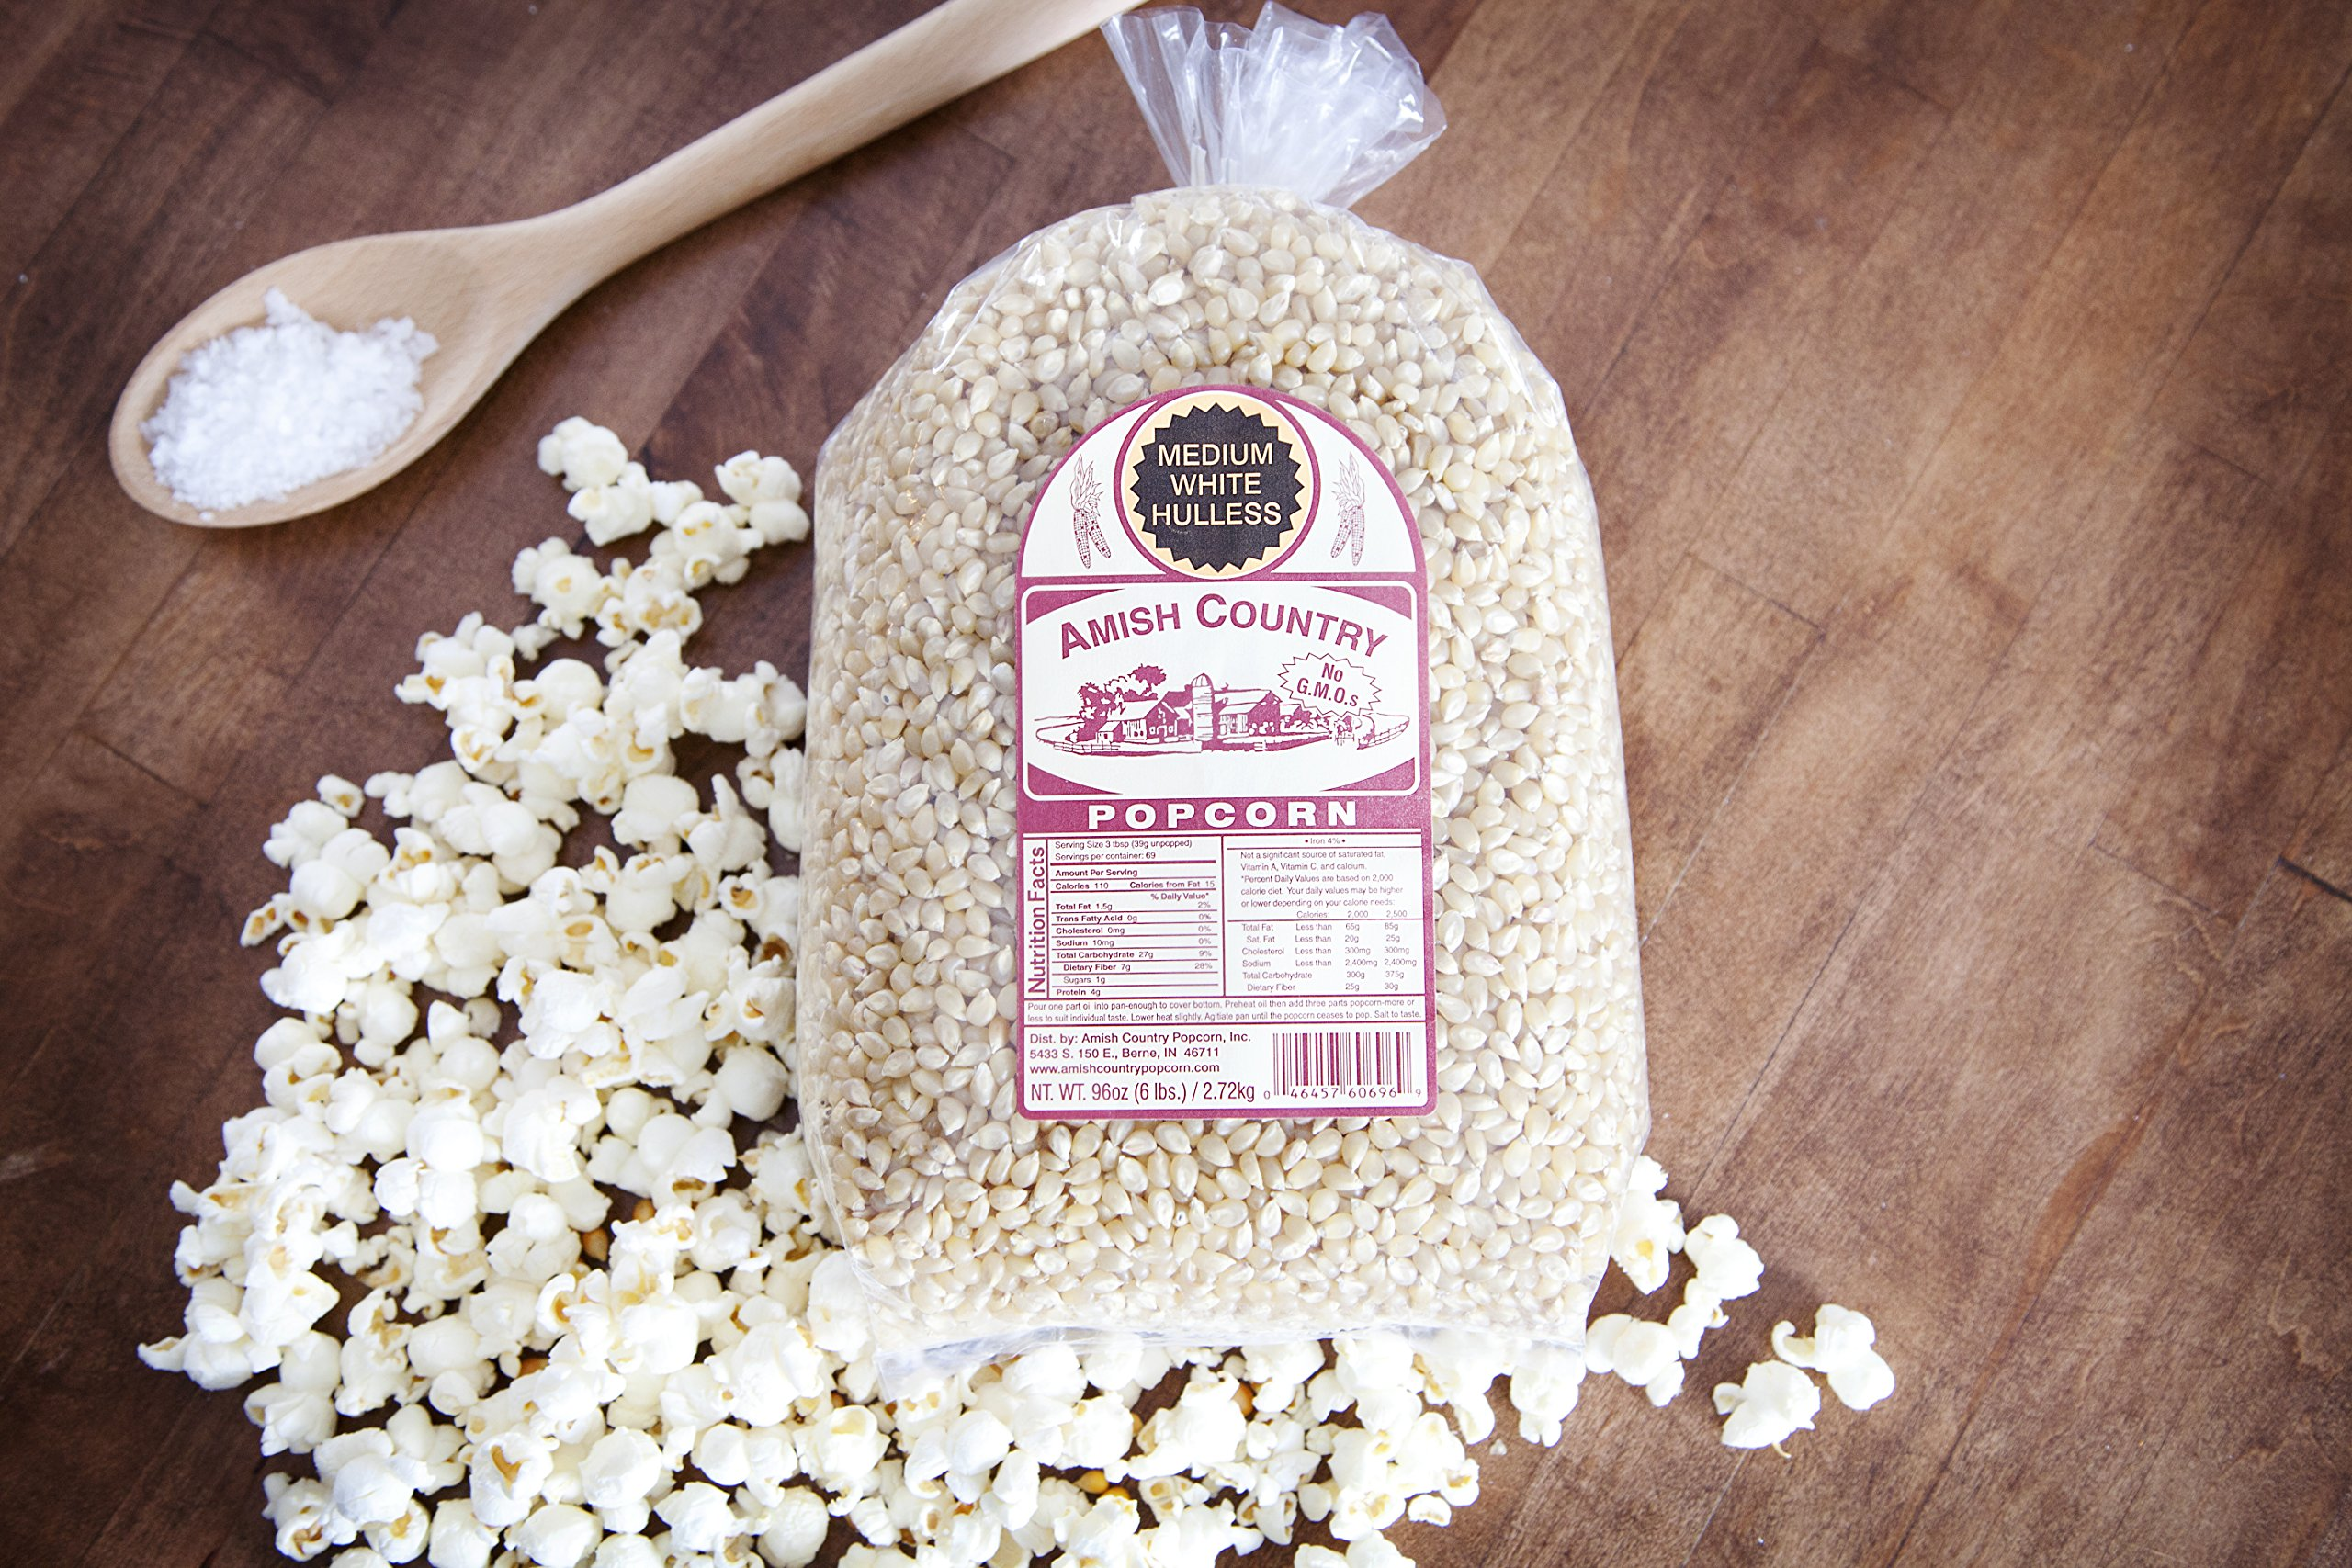 Amish Country Popcorn - Medium White (6 Pound Bag) Popcorn Kernels with Recipe Guide, Old Fashioned, Non GMO, Gluten Free, Microwaveable, Stovetop and Air Popper Friendly by Amish Country Popcorn (Image #4)